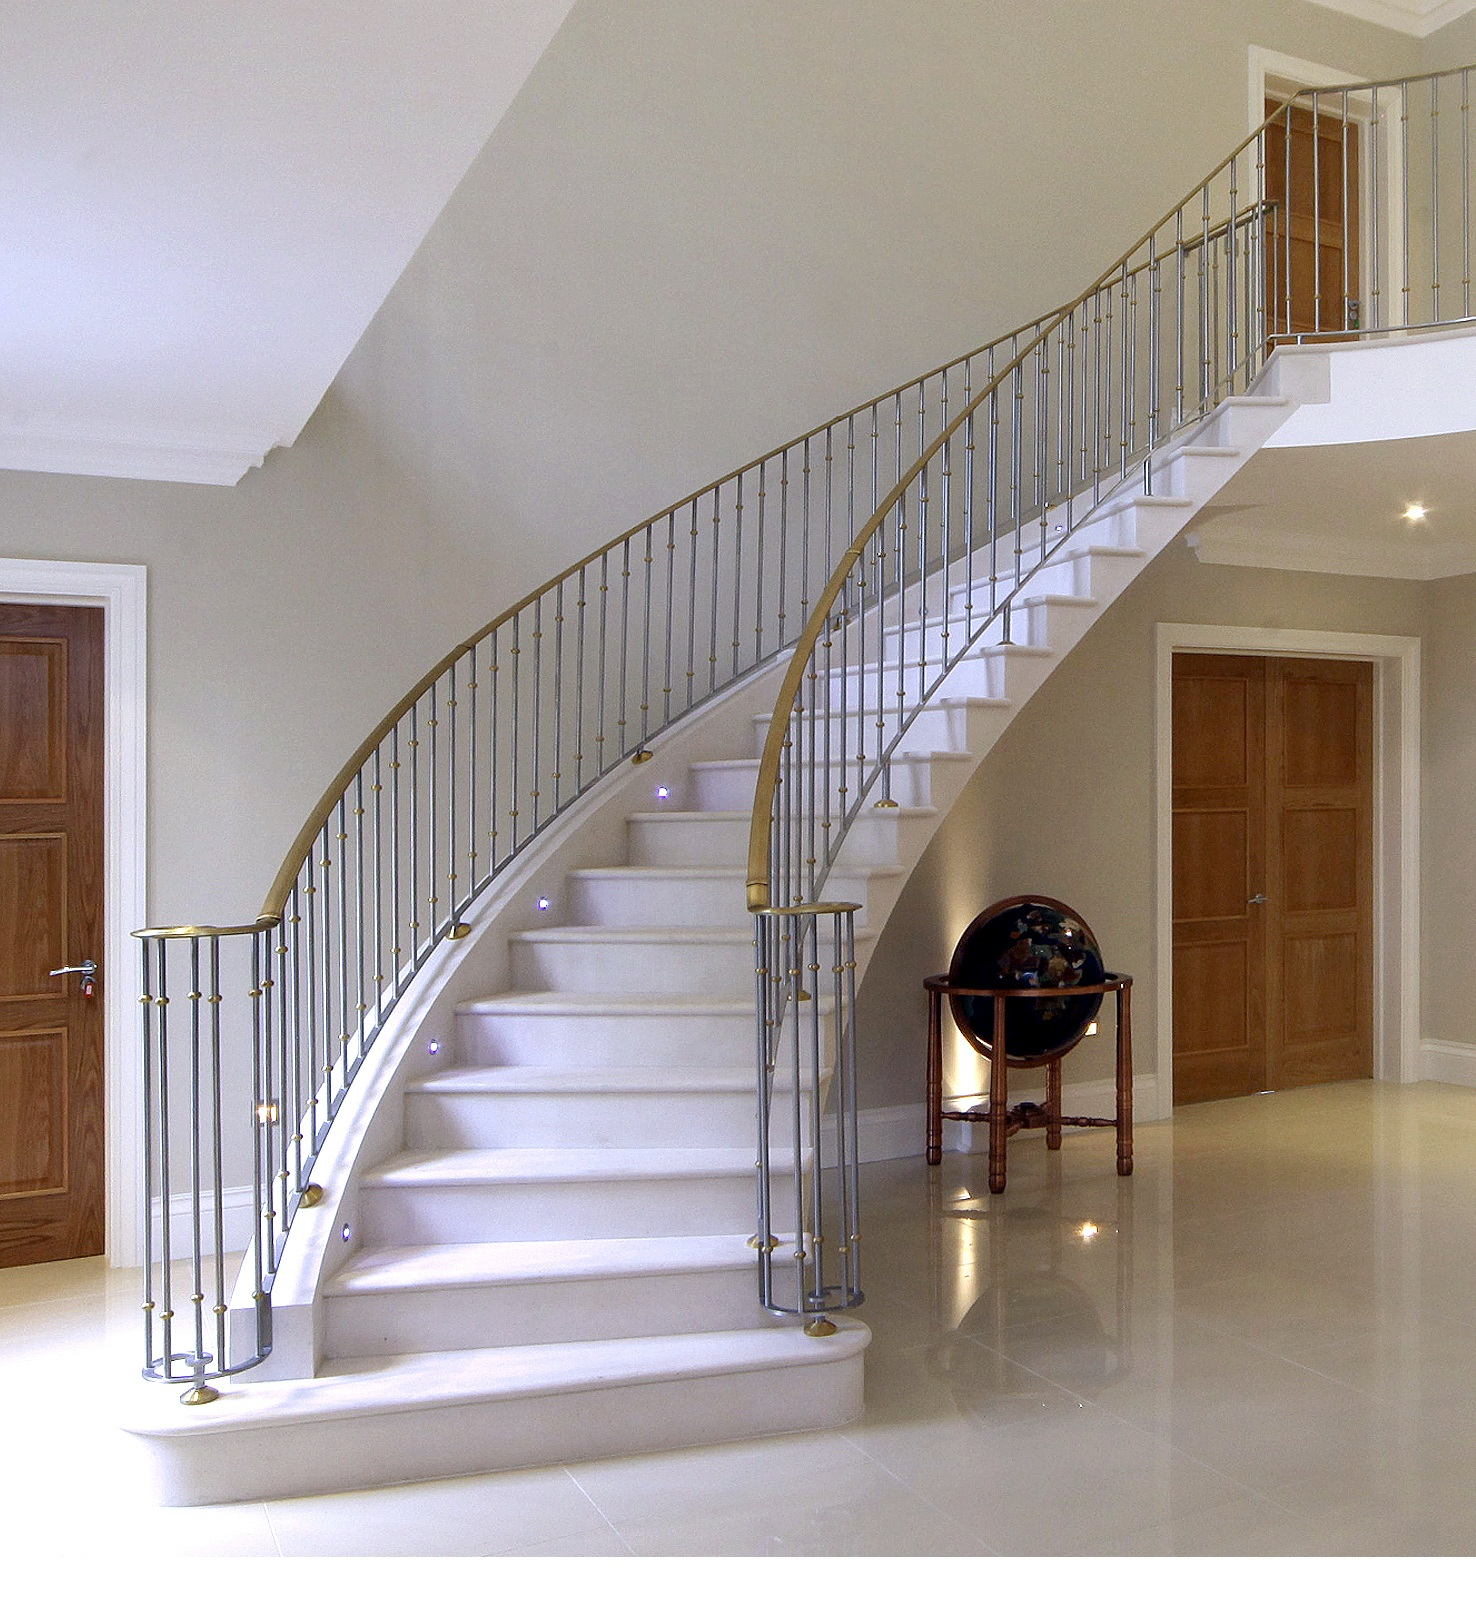 12. Steel-supported honed Moleanos staircase with polished Moleanos stone flooring – Hertfordshire